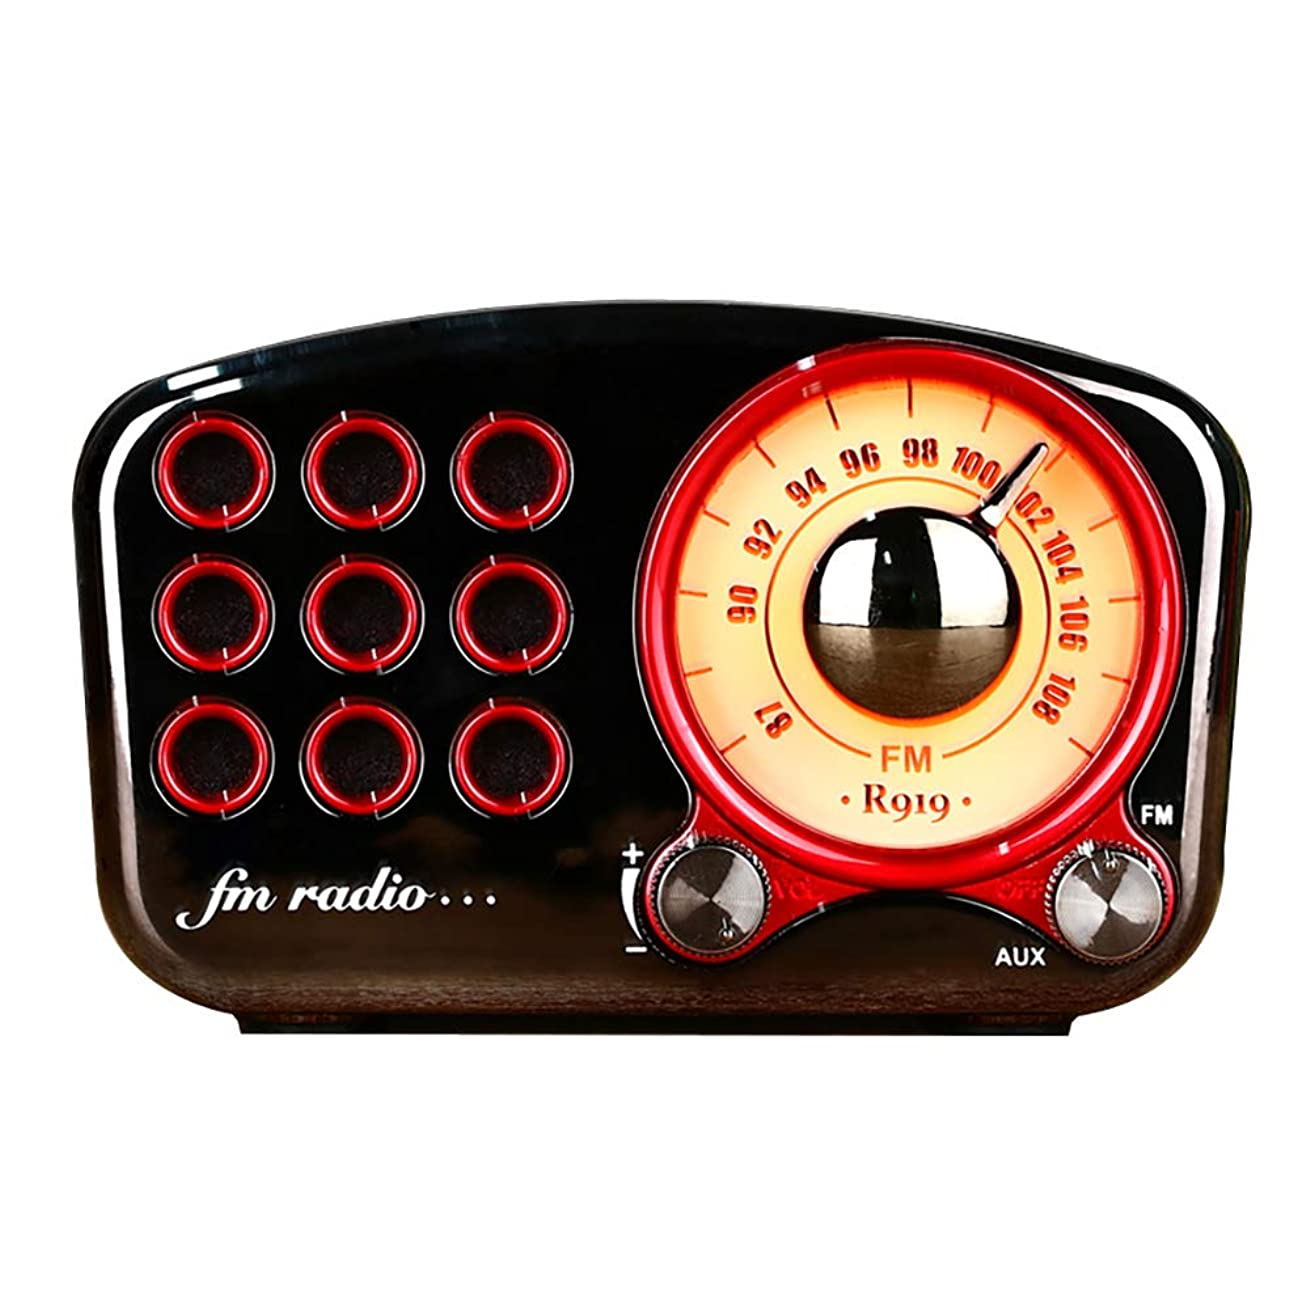 Retro Radio Bluetooth Speaker, Portable Wireless, with Lights, High Fidelity Sound Quality, 8 Hours of Battery Life, Stand by TF Card AUX, Suitable for Family (Gun Color)